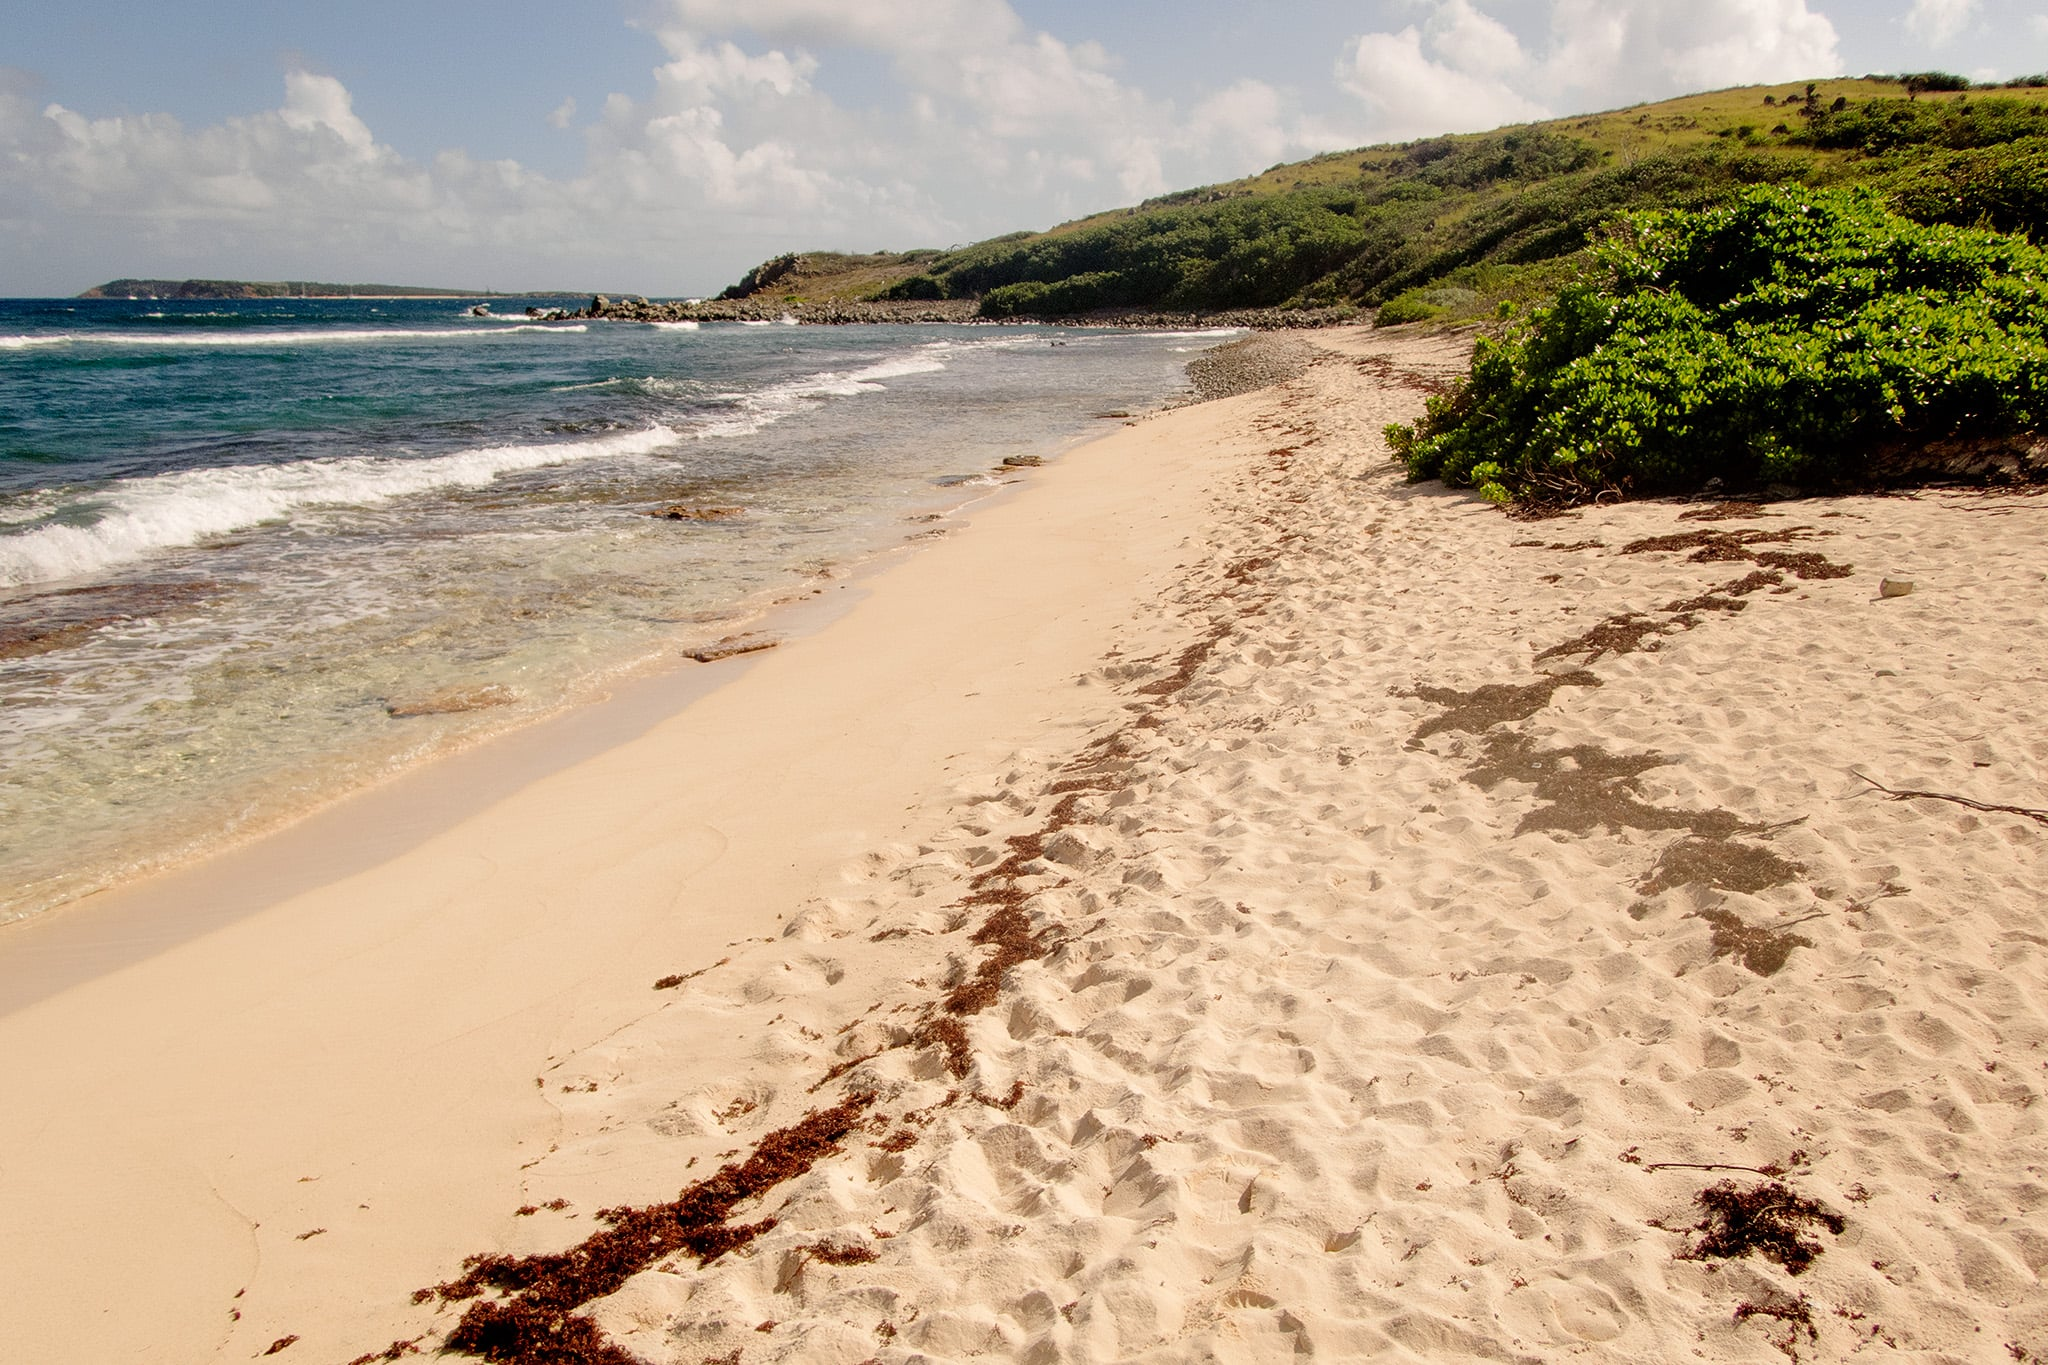 """The reward for a short hot hike- having a quiet beach on the """"other side"""" of the islet to ourselves."""